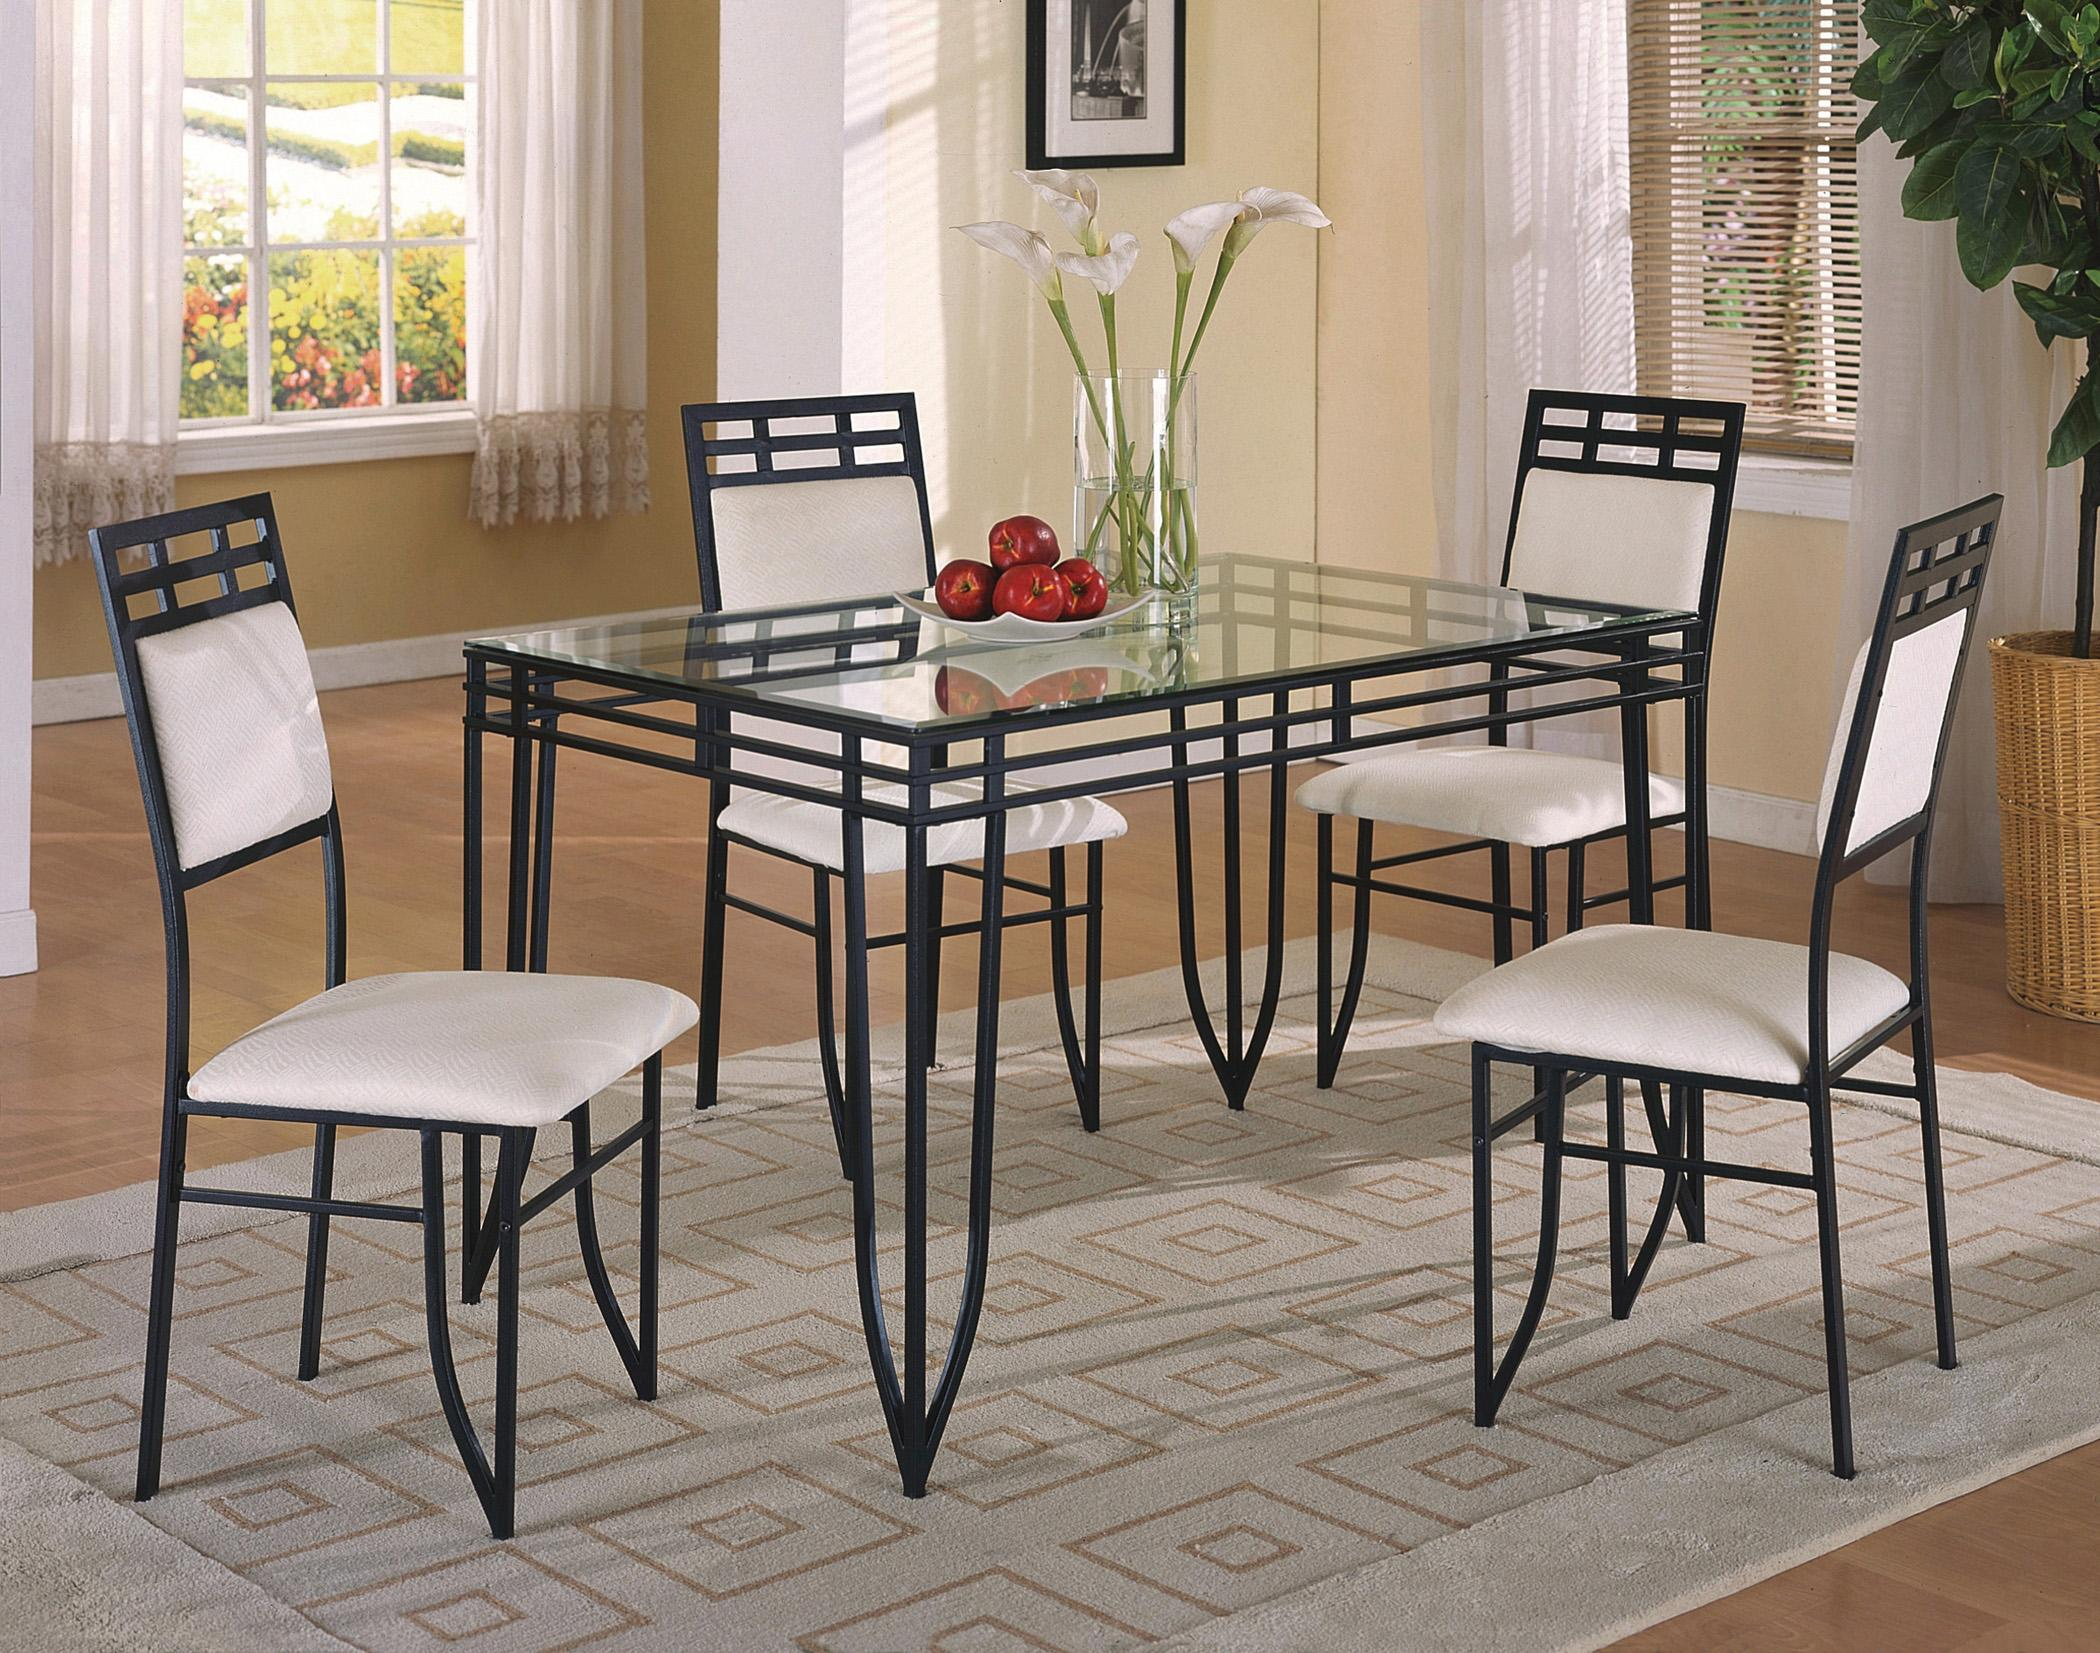 pub style table and chair set revolving for back pain crown mark matrix 5 piece dinette side chairs bullard furniture dining sets fayetteville nc